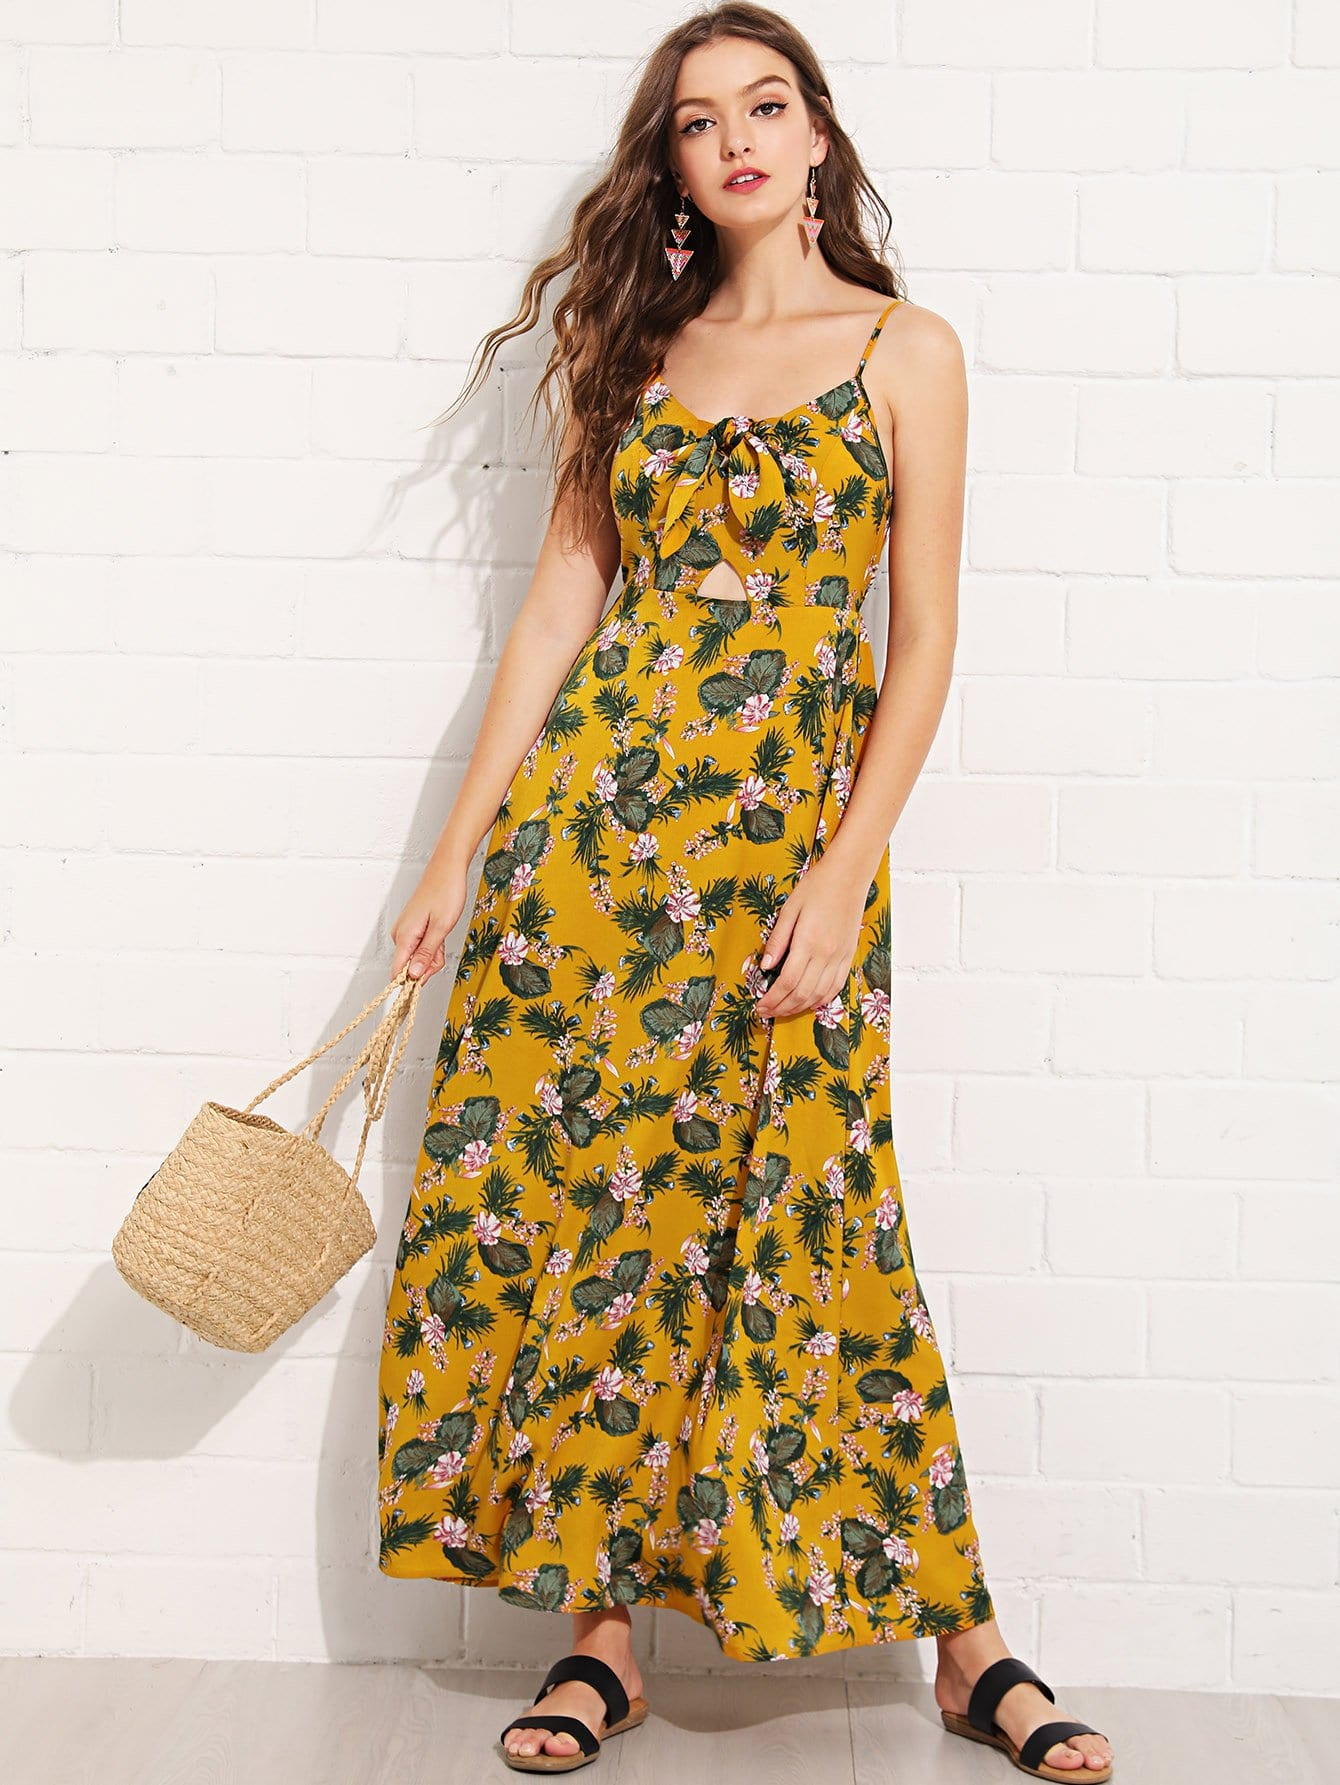 Knot Cut Out Front Keyhole Back Floral Cami Dress keyhole front mix media fitted dress